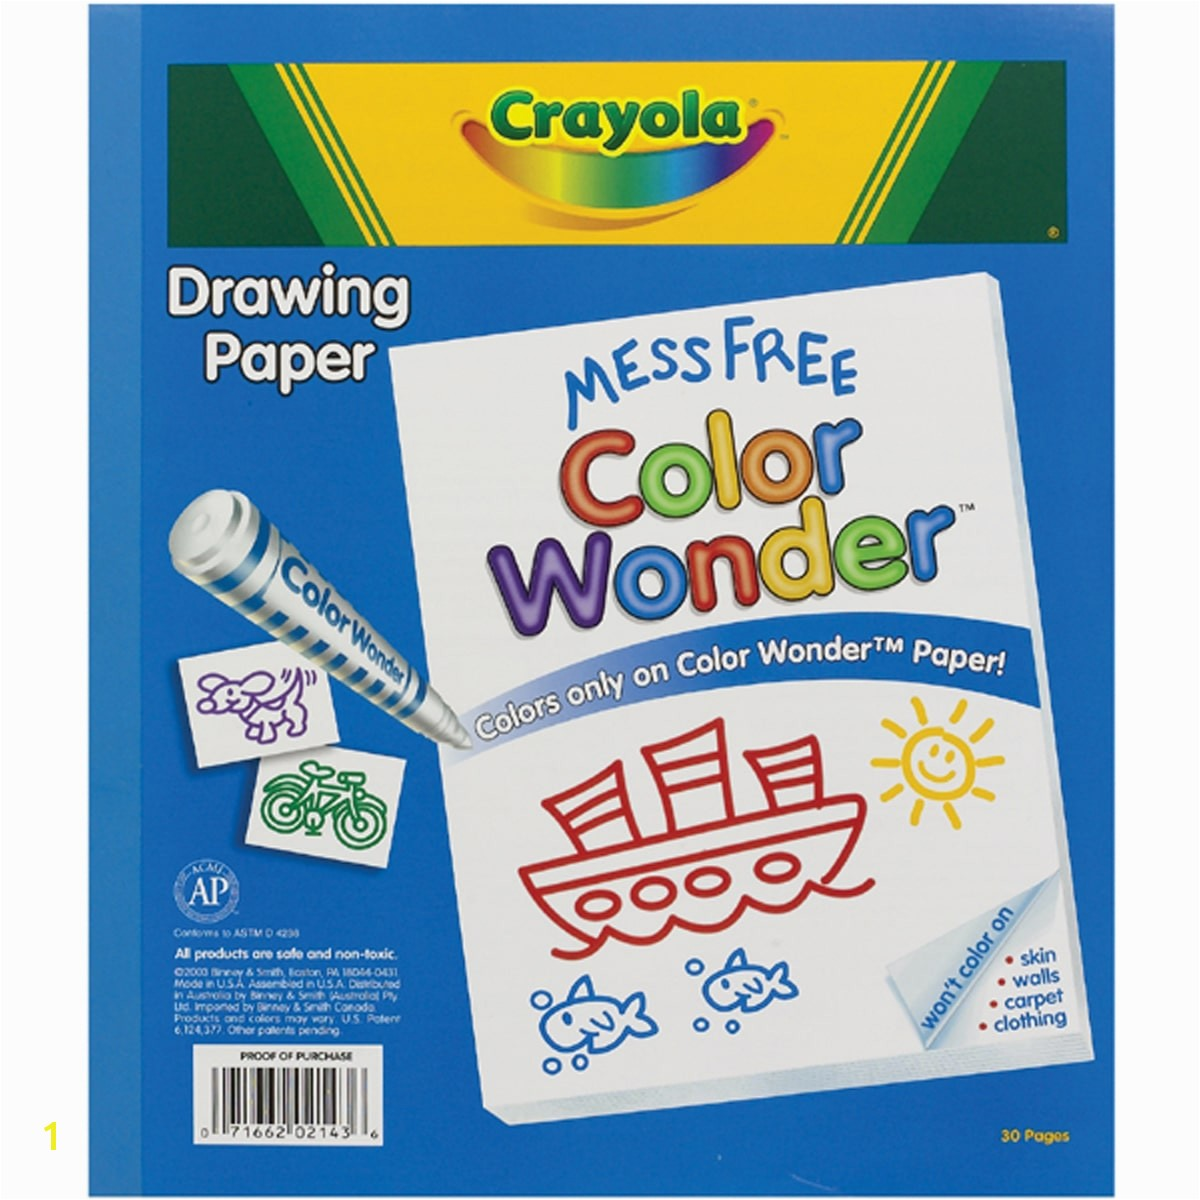 Crayola Color Wonder Drawing Pad 30 pages of Mess Free Canvas to use with Color Wonder Mess Free Markers and Paints Walmart